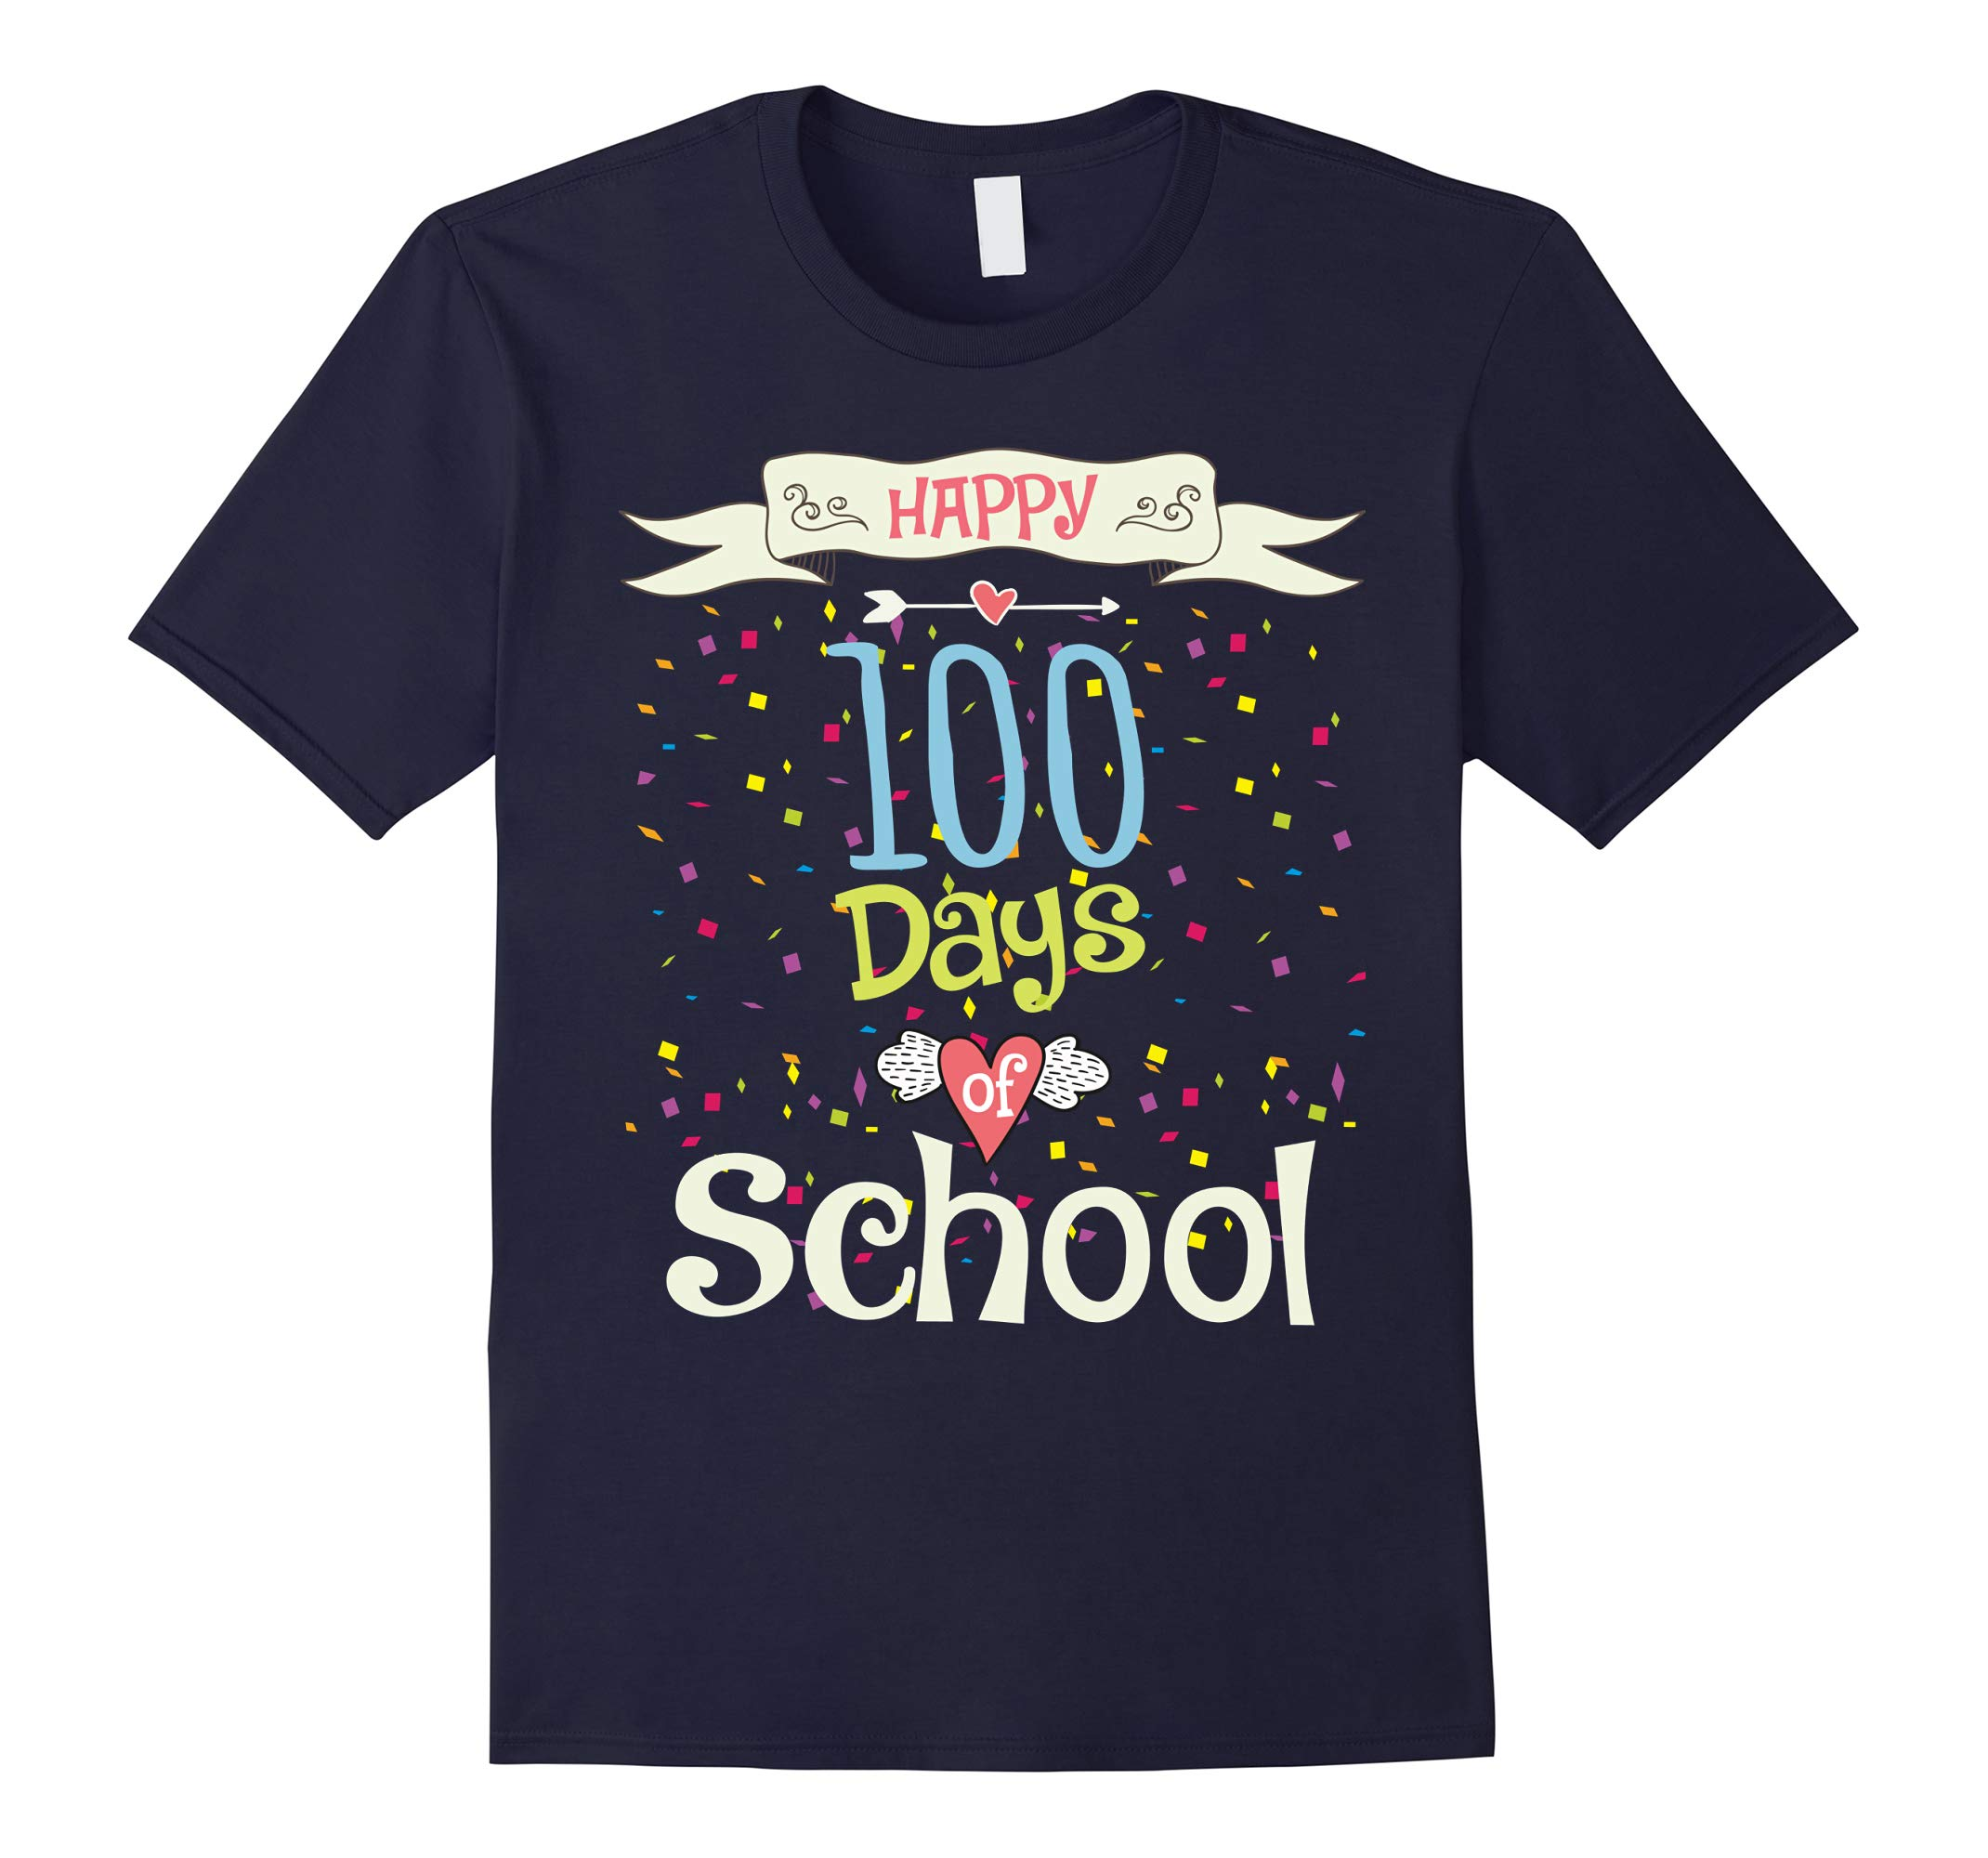 100 Days Of School Shirt for Kids, Boy & Girl, Happy 100th-RT